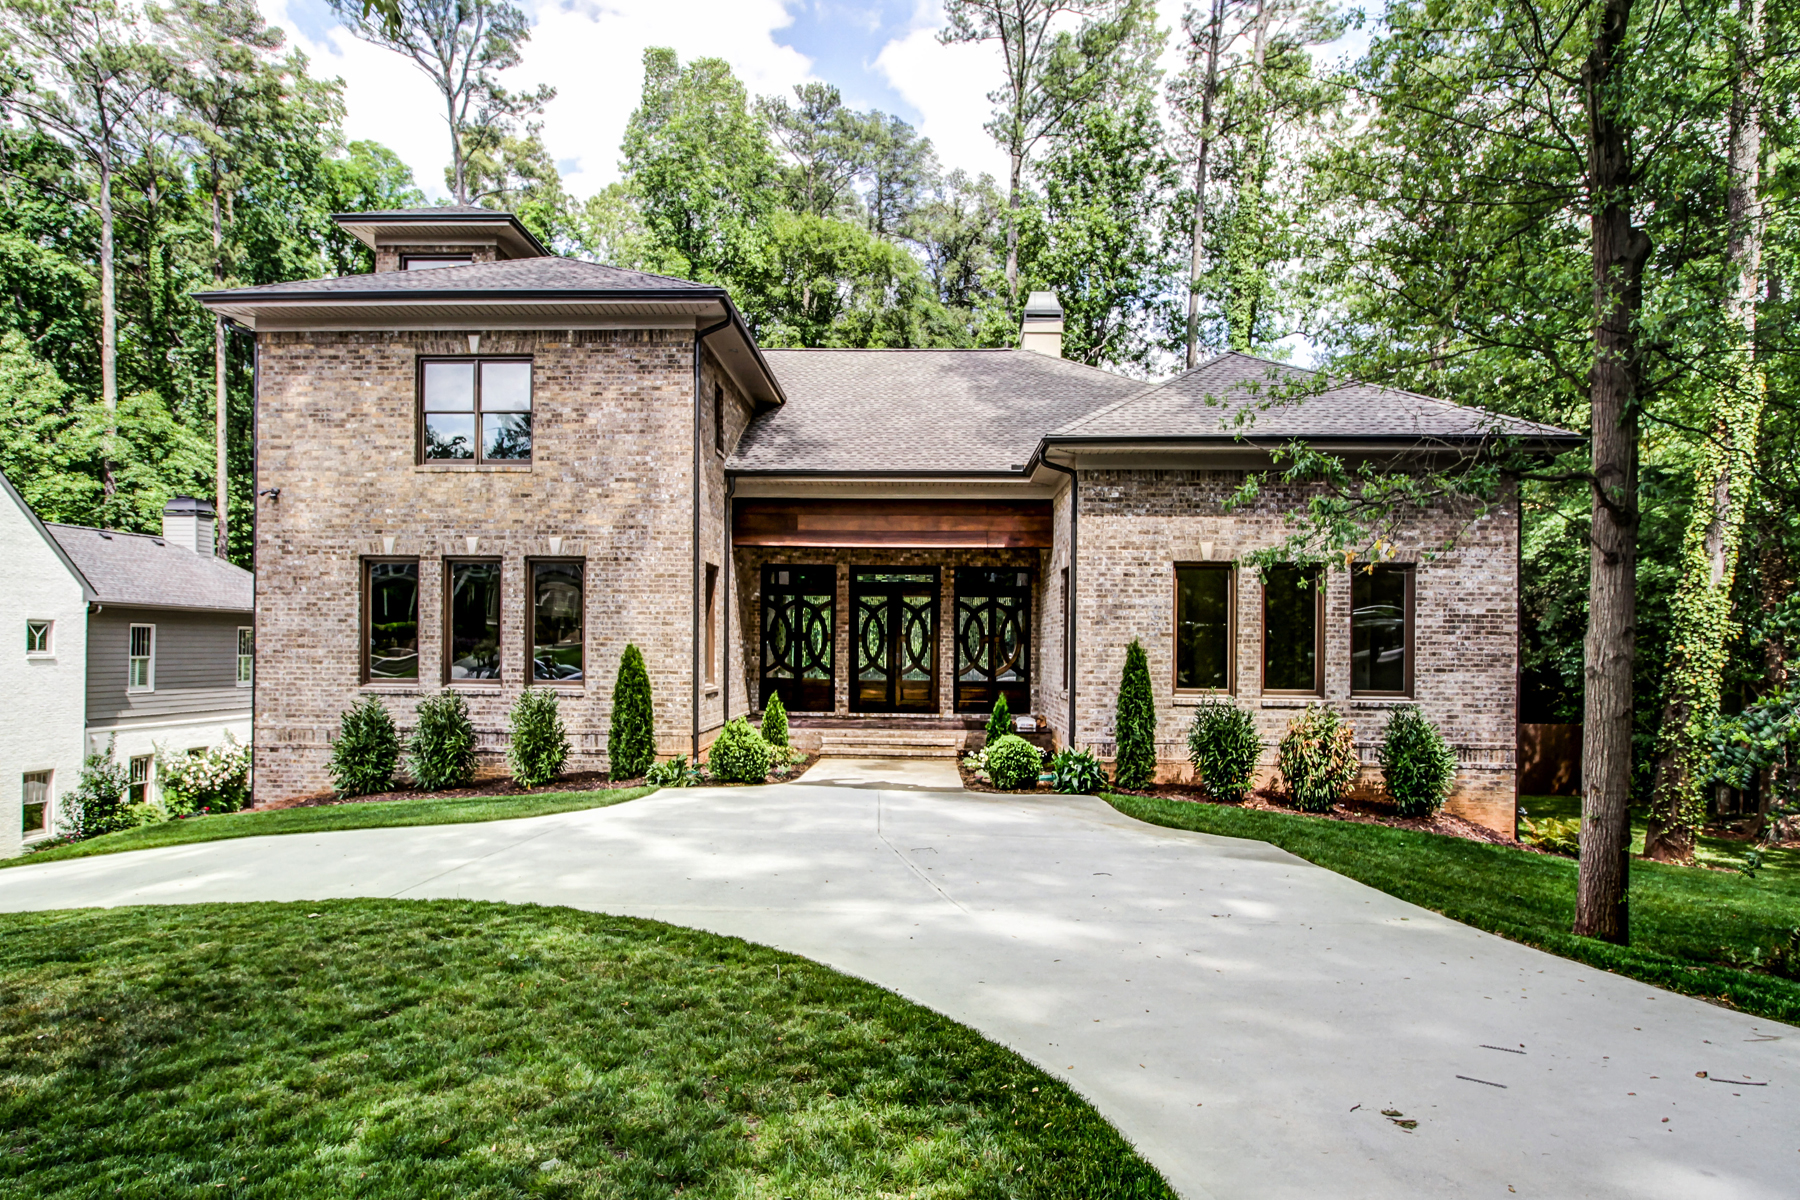 獨棟家庭住宅 為 出售 在 Sprawling New Home In Morningside With Resort-style Backyard 1801 Wellbourne Drive Morningside, Atlanta, 喬治亞州, 30324 美國